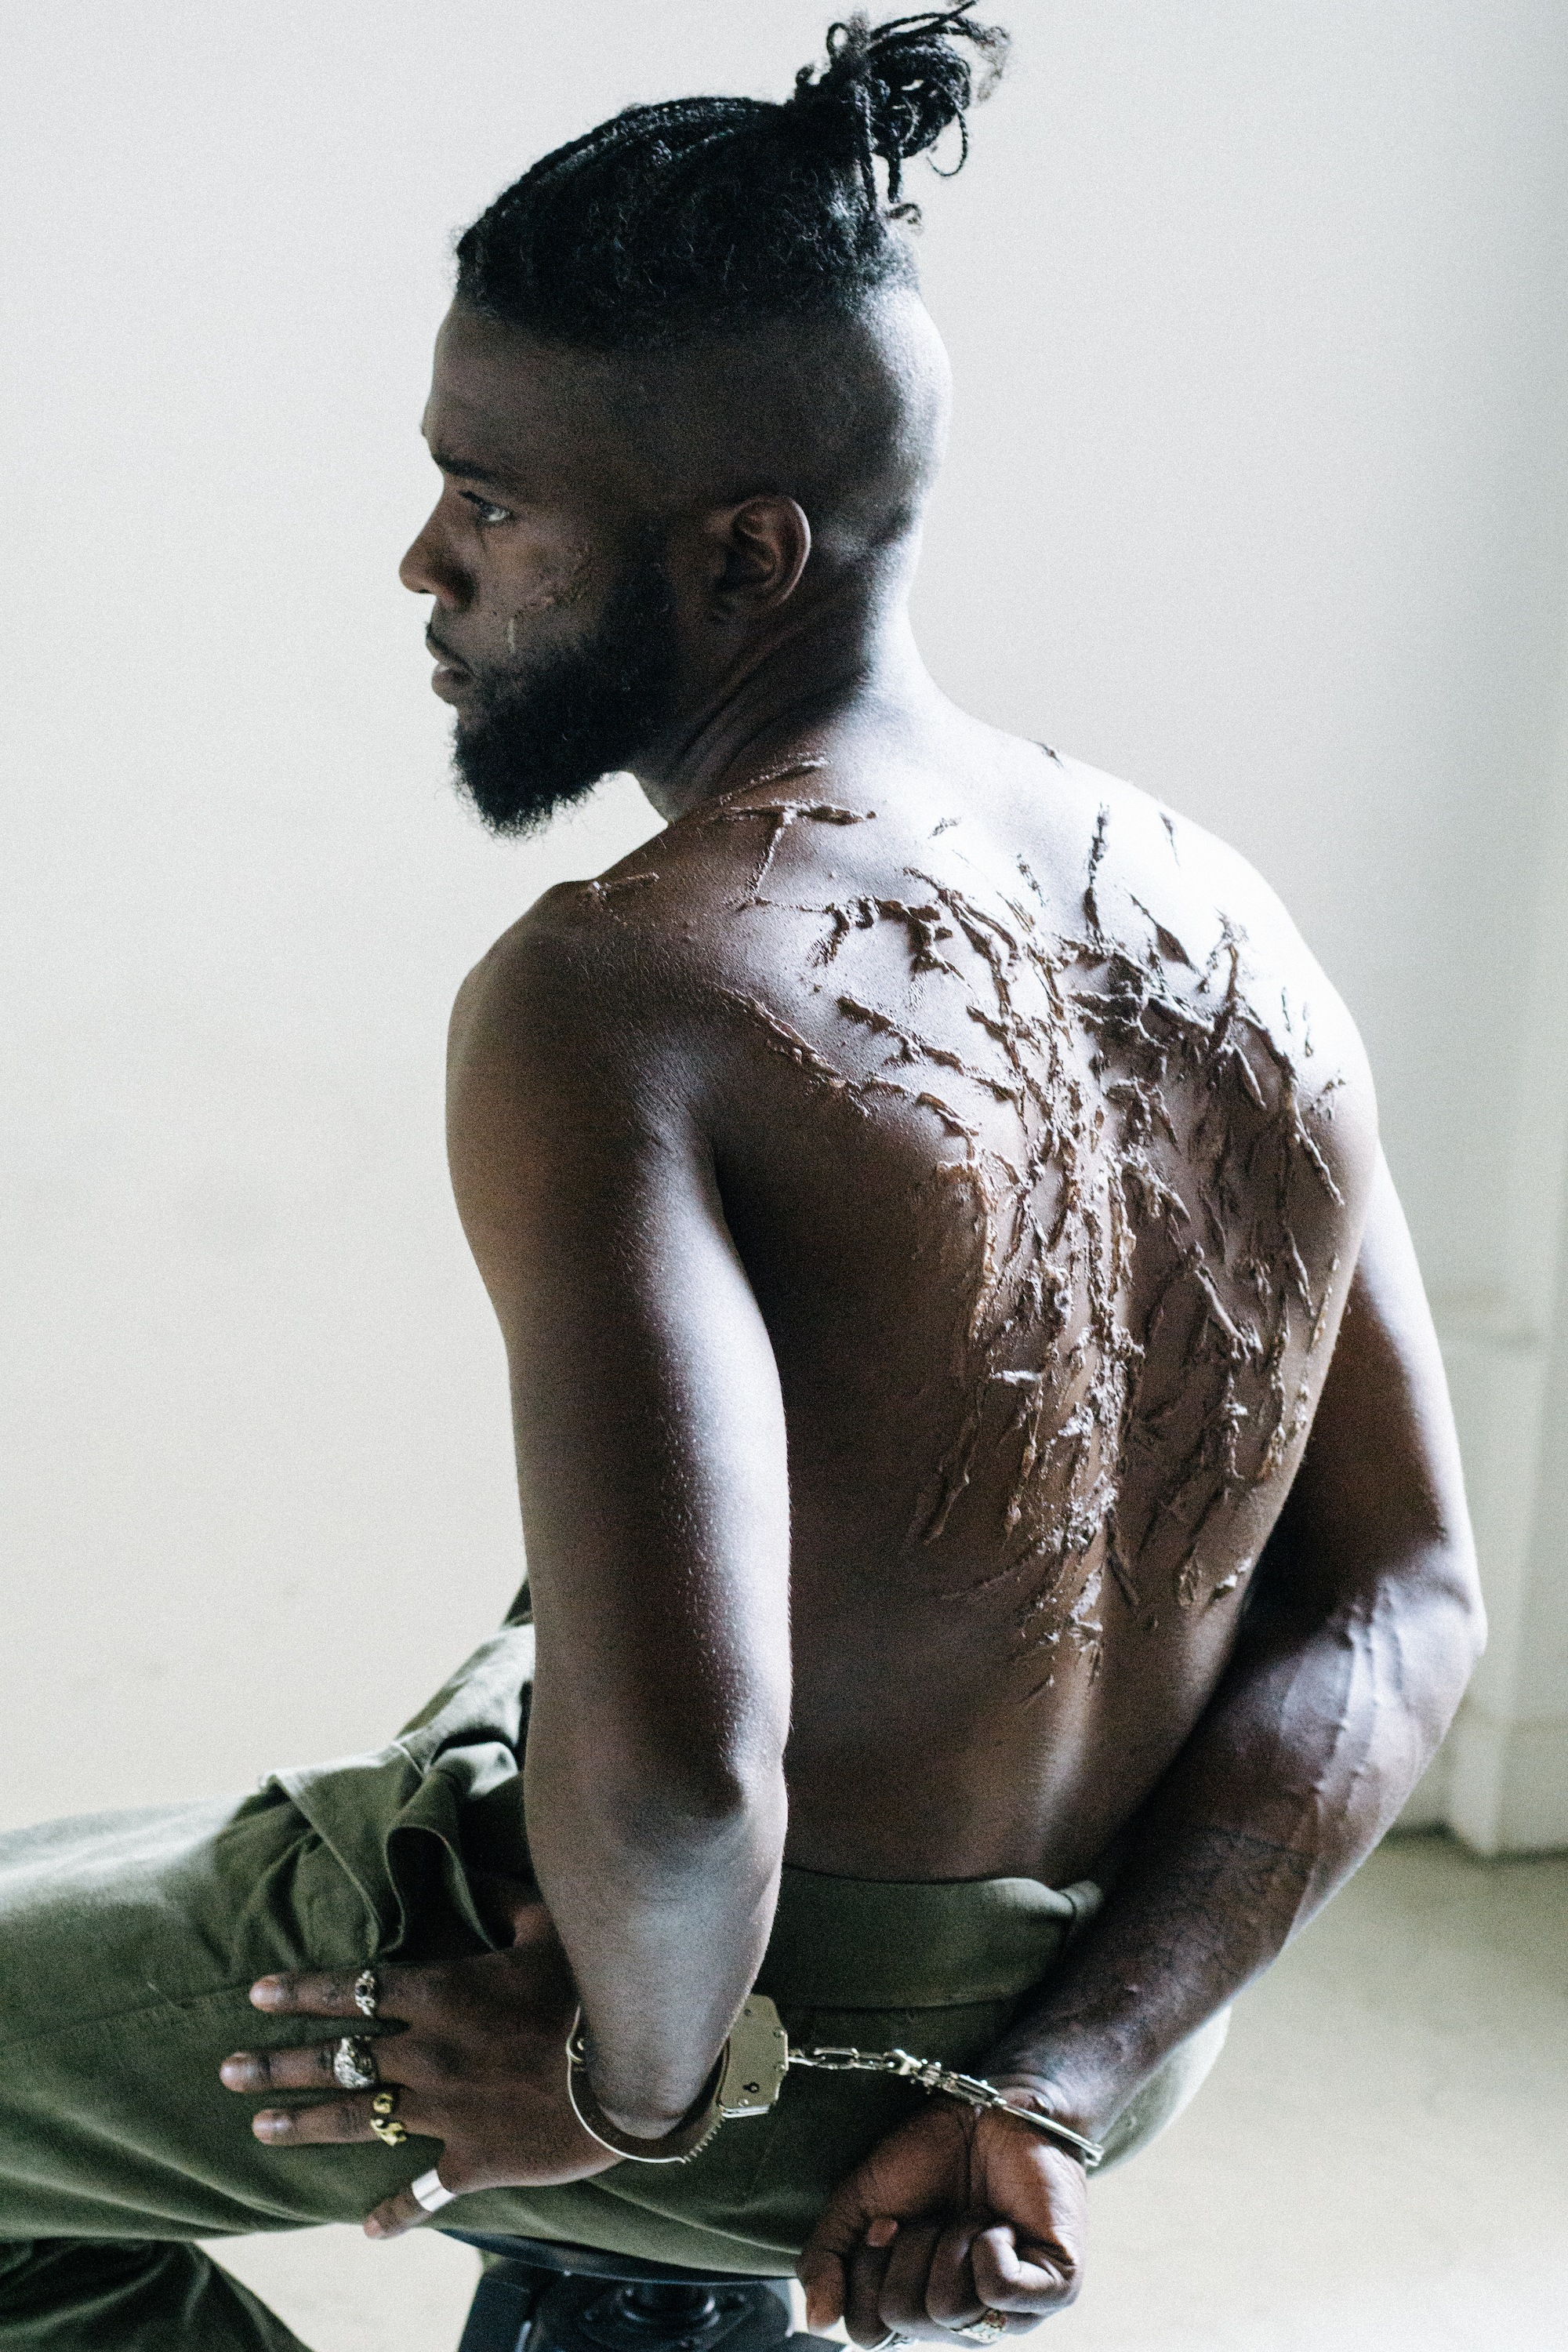 THE FADER     Photography    Worked with frequent collaborator visual artist    Gianni Lee    to create several images as artistic commentary on the connection between slavery and the prison system